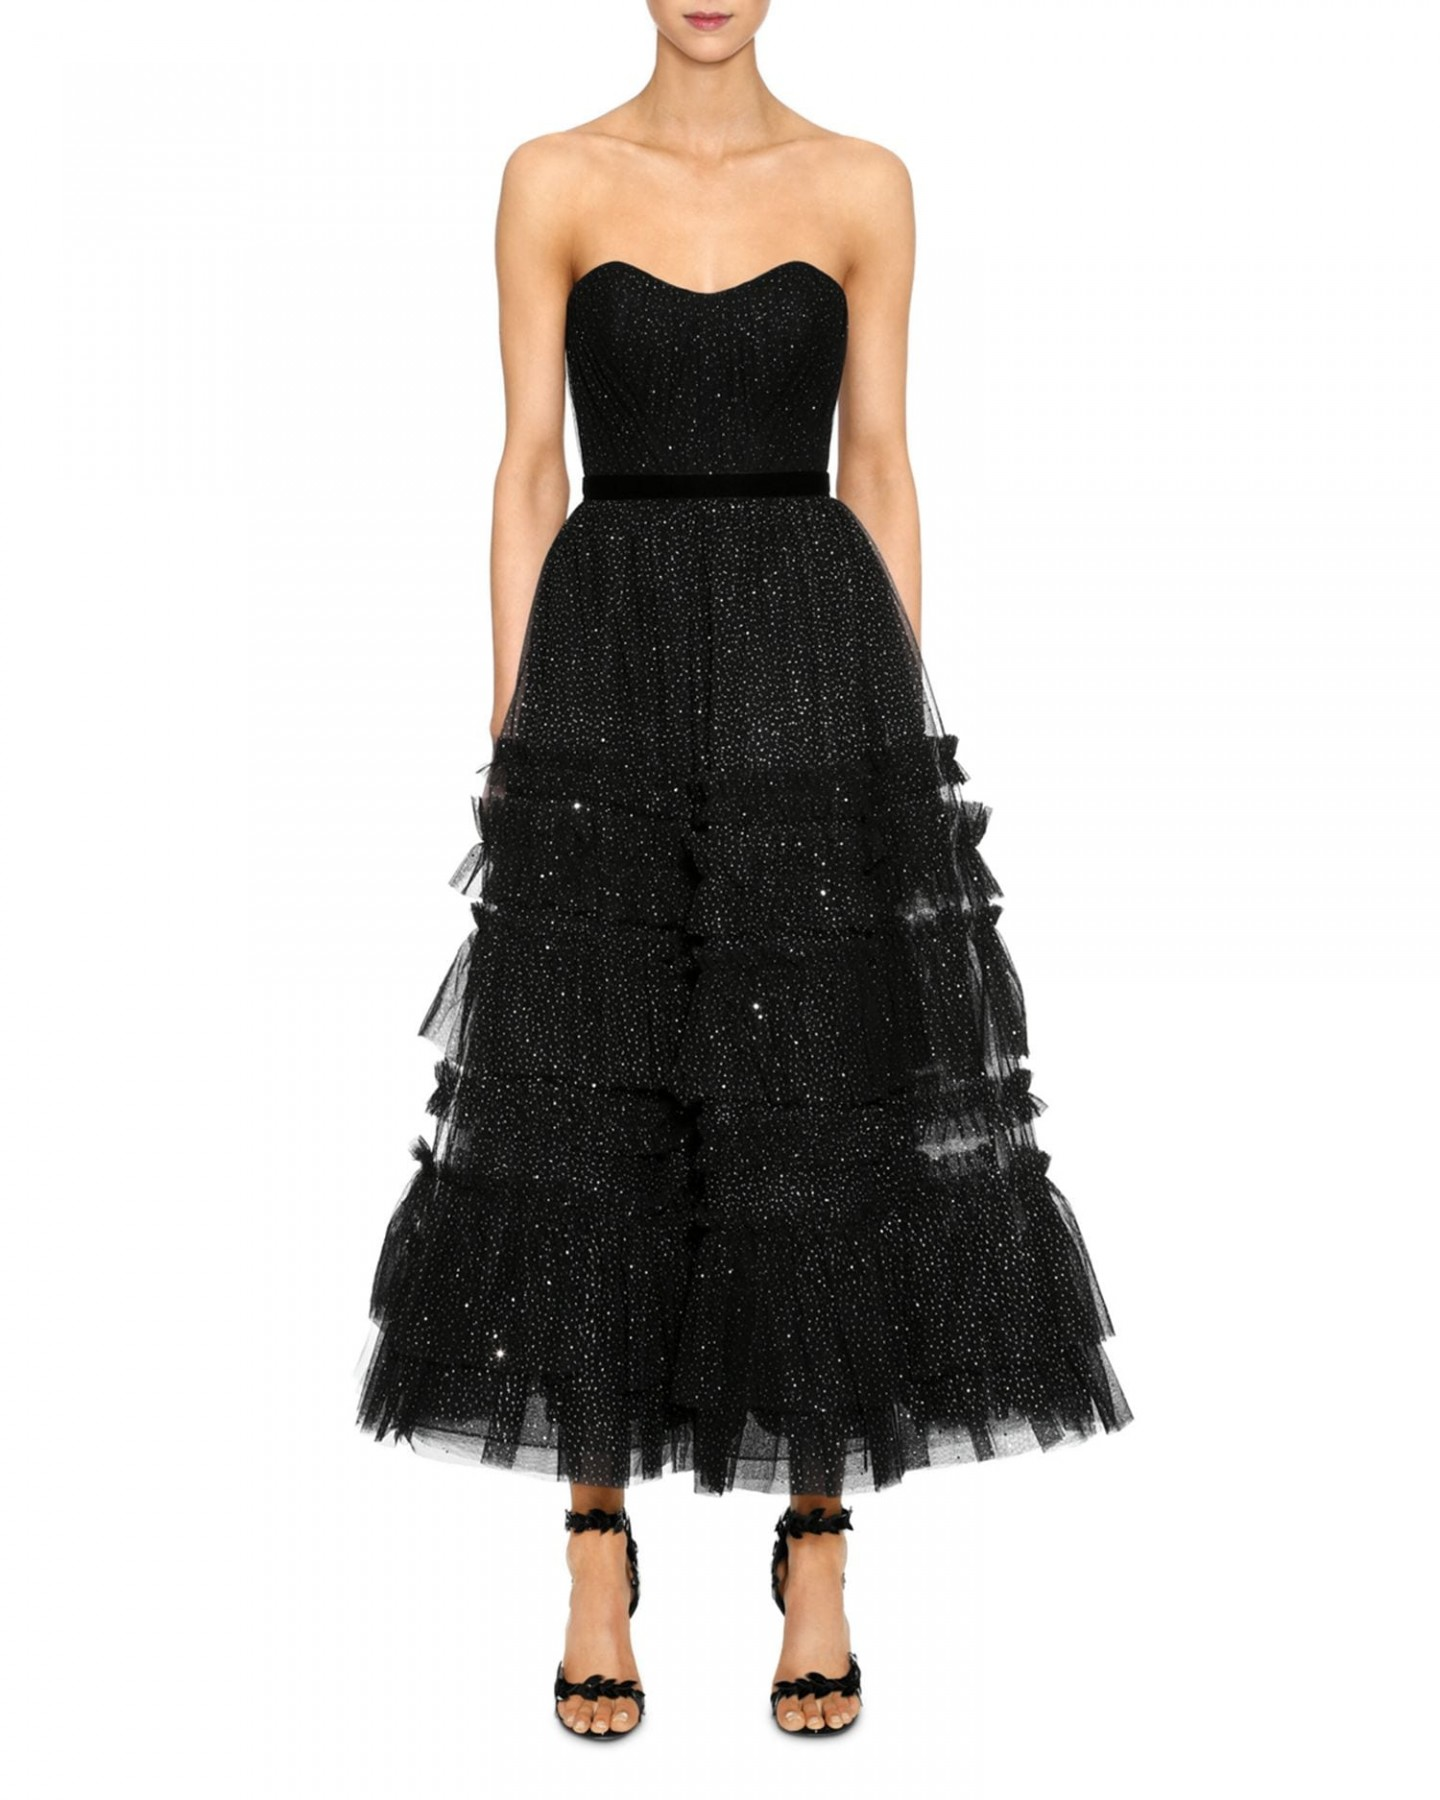 MARCHESA NOTTE Strapless Tulle-Detail Midi Dress